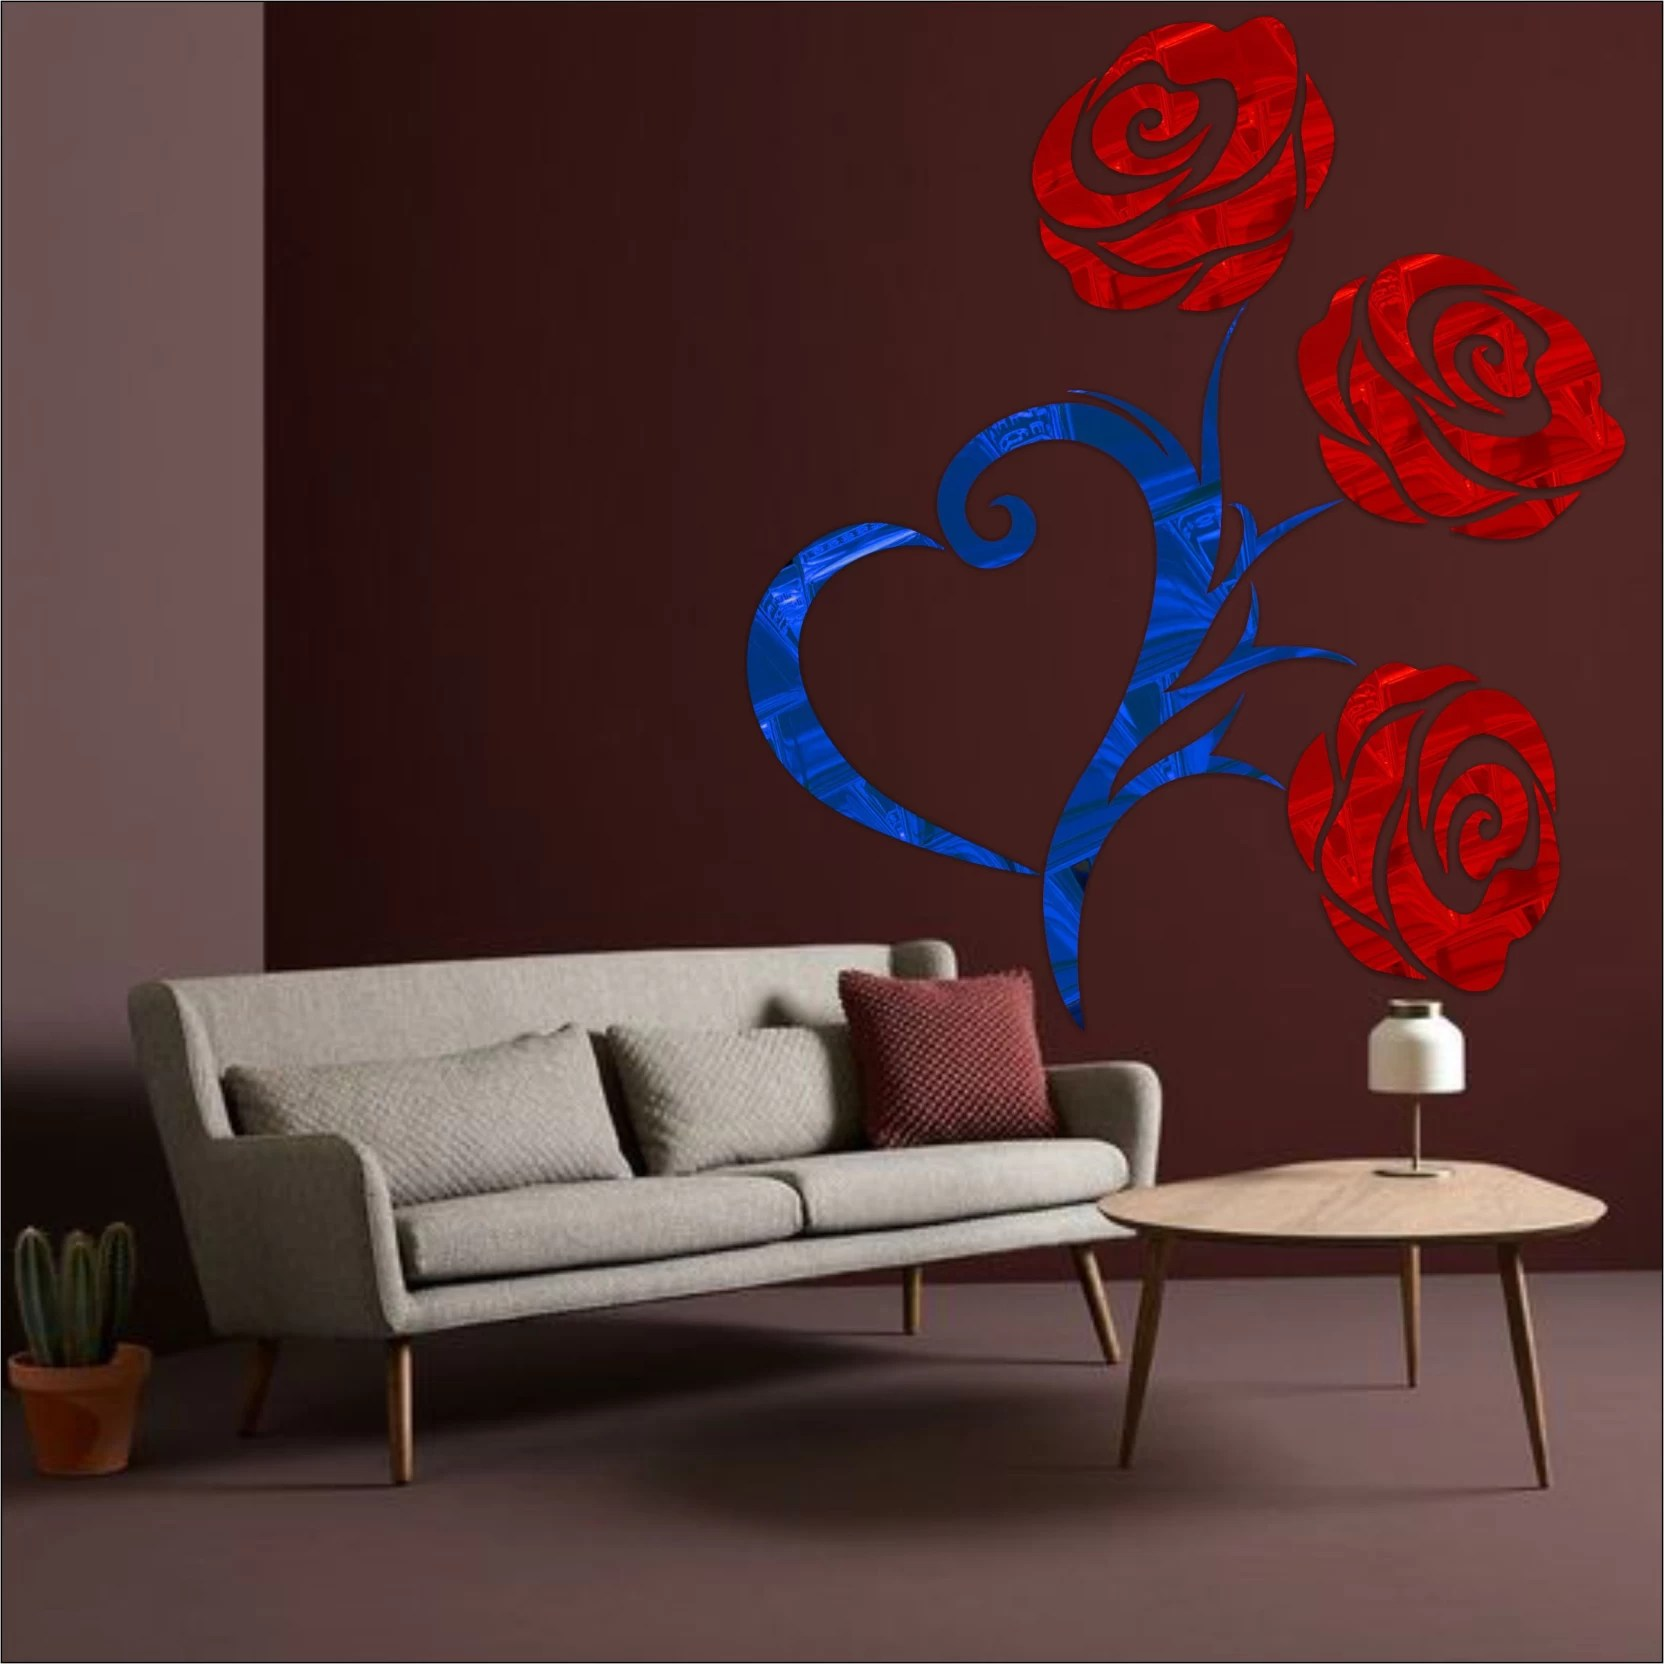 Look Decor Extra Large Heart Rose Code16acrylic Sticker 3d